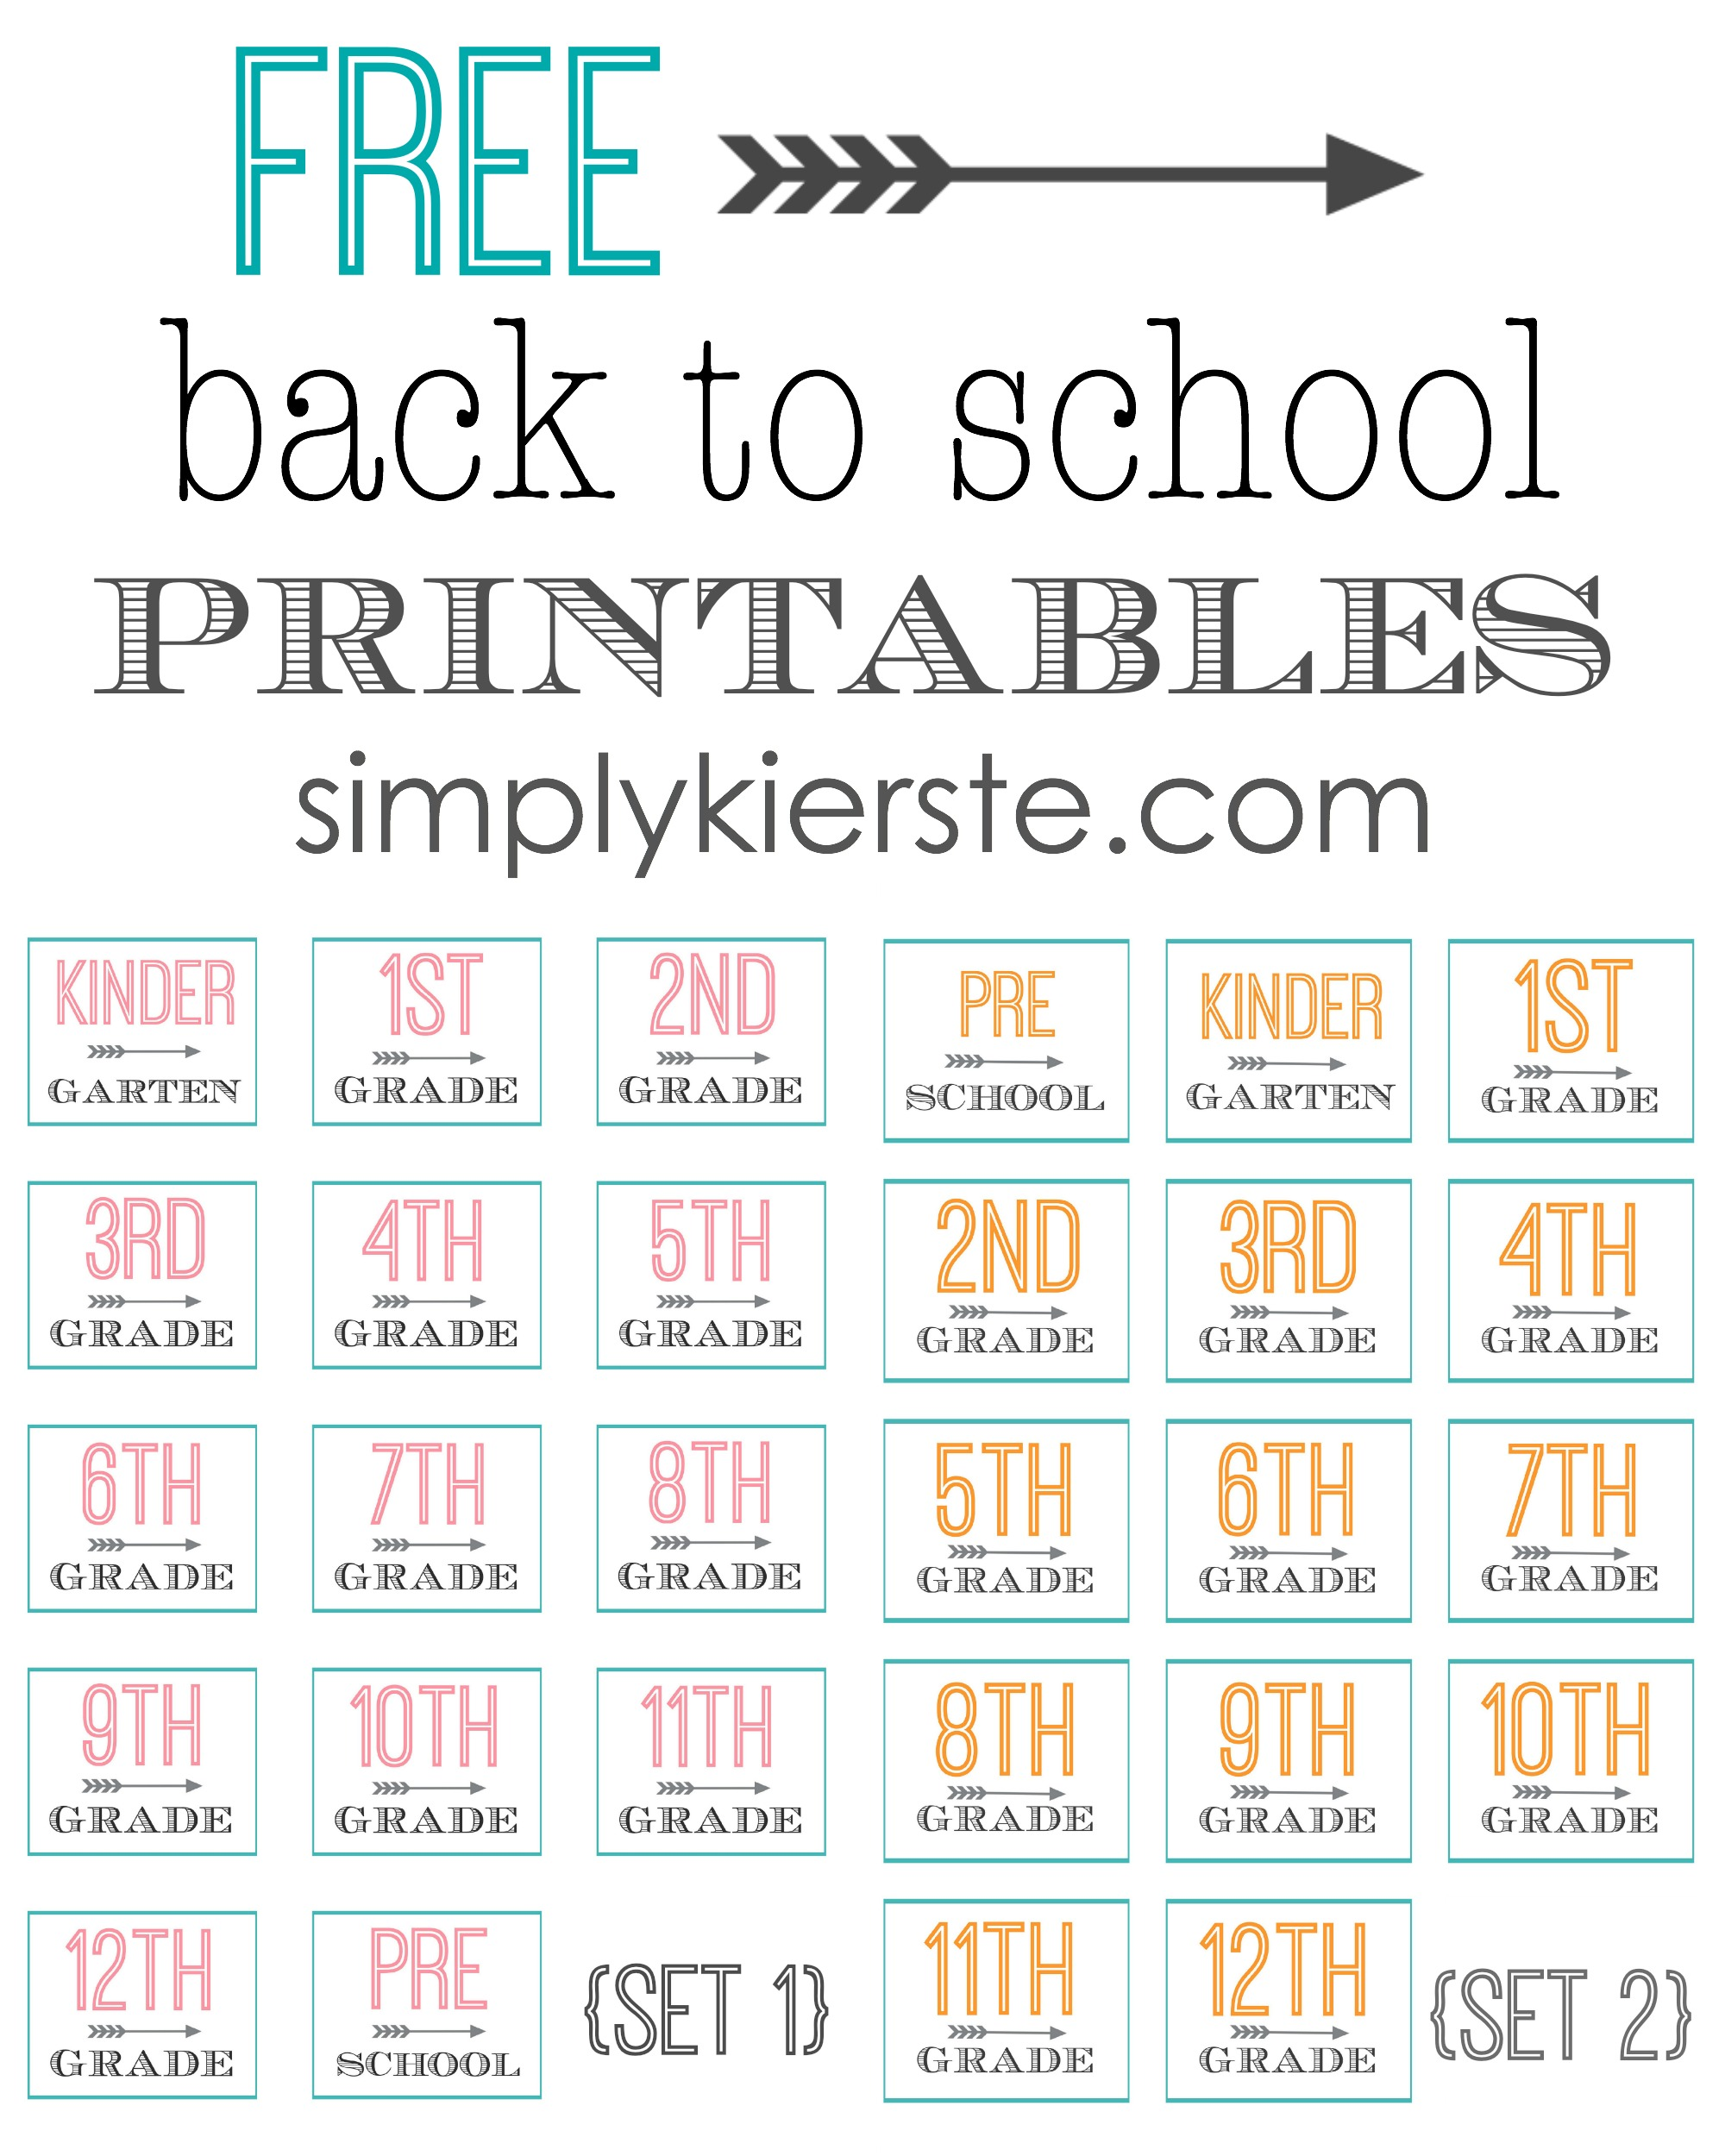 free back to school printables | simplykierste.com